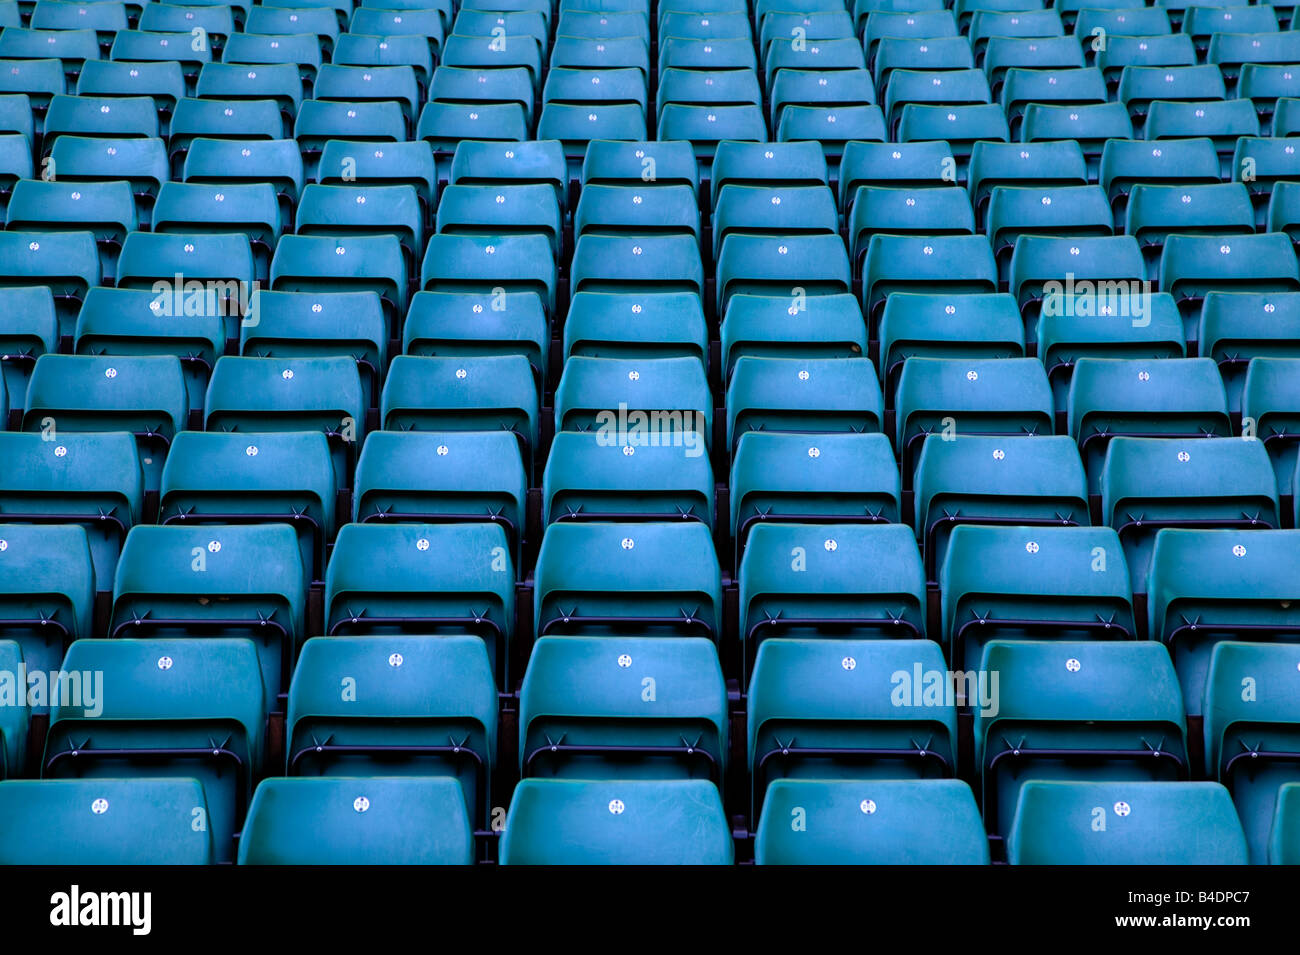 Rows of empty blue seats in a sports stadium - Stock Image